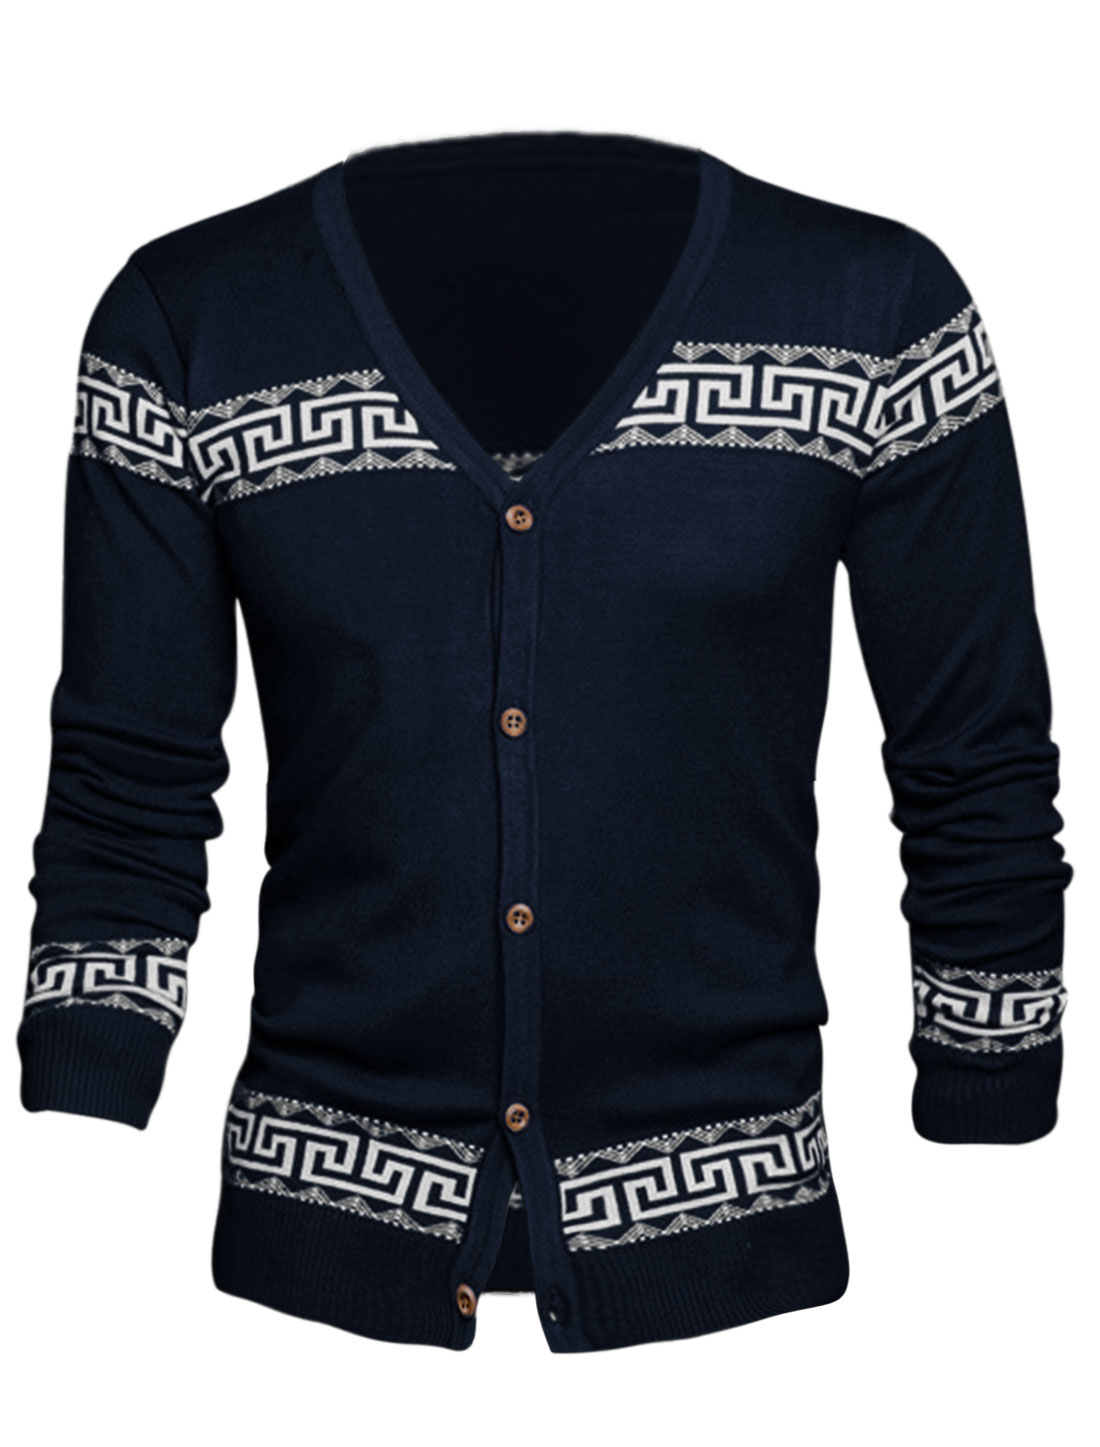 Cozy Fit Geometric Pattern Casual Fashion Cardigan for Men Navy Blue S